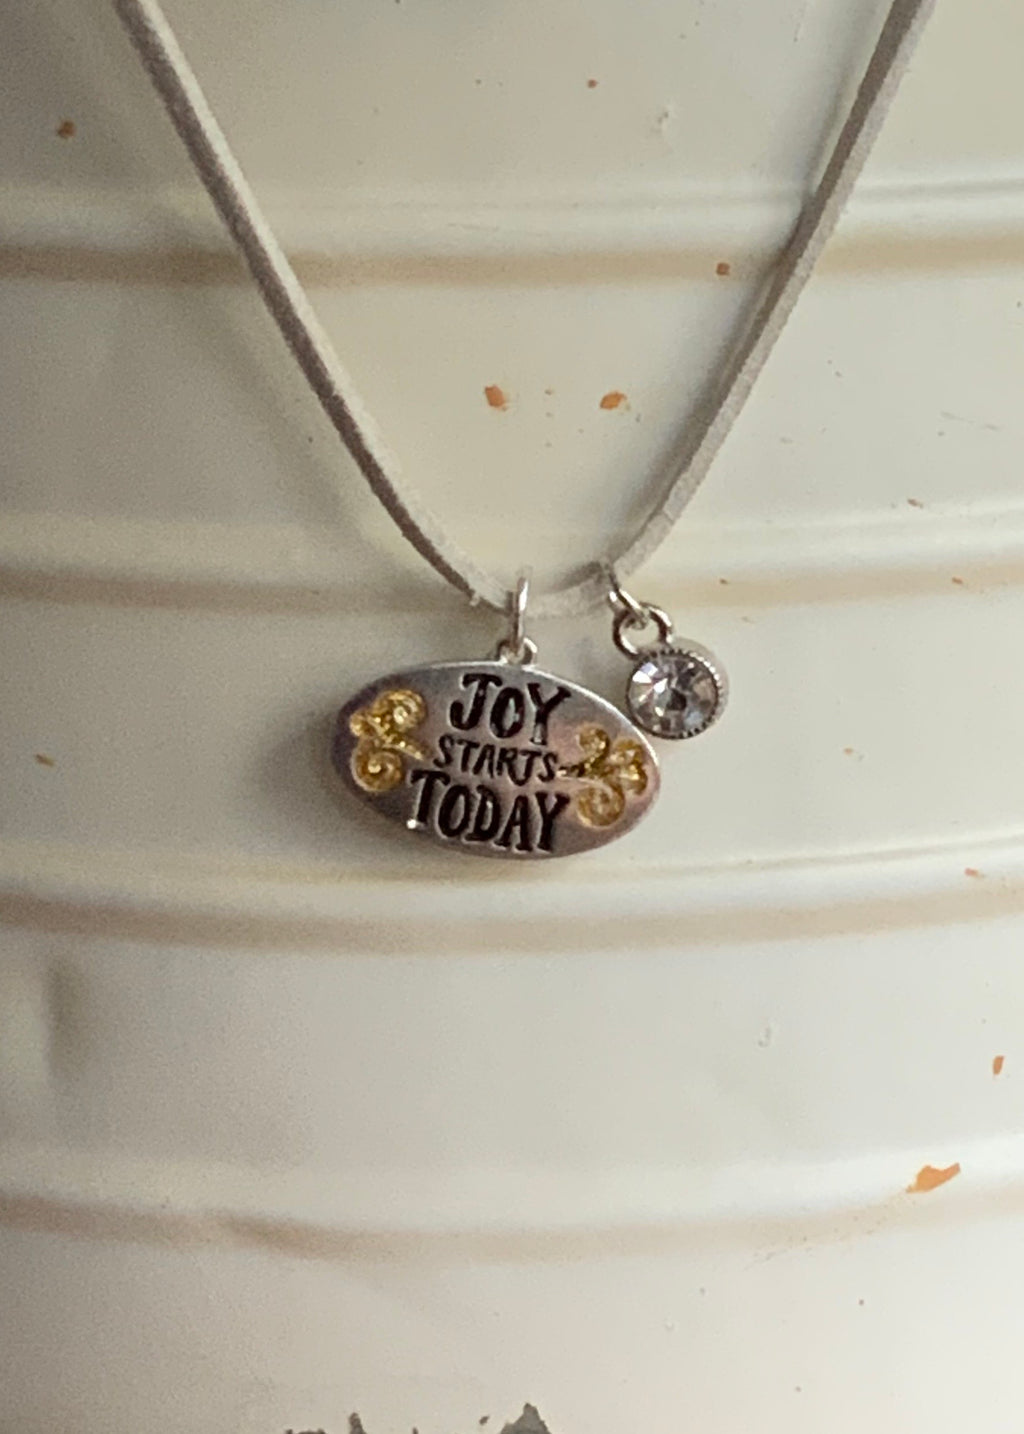 Joy Today Necklace